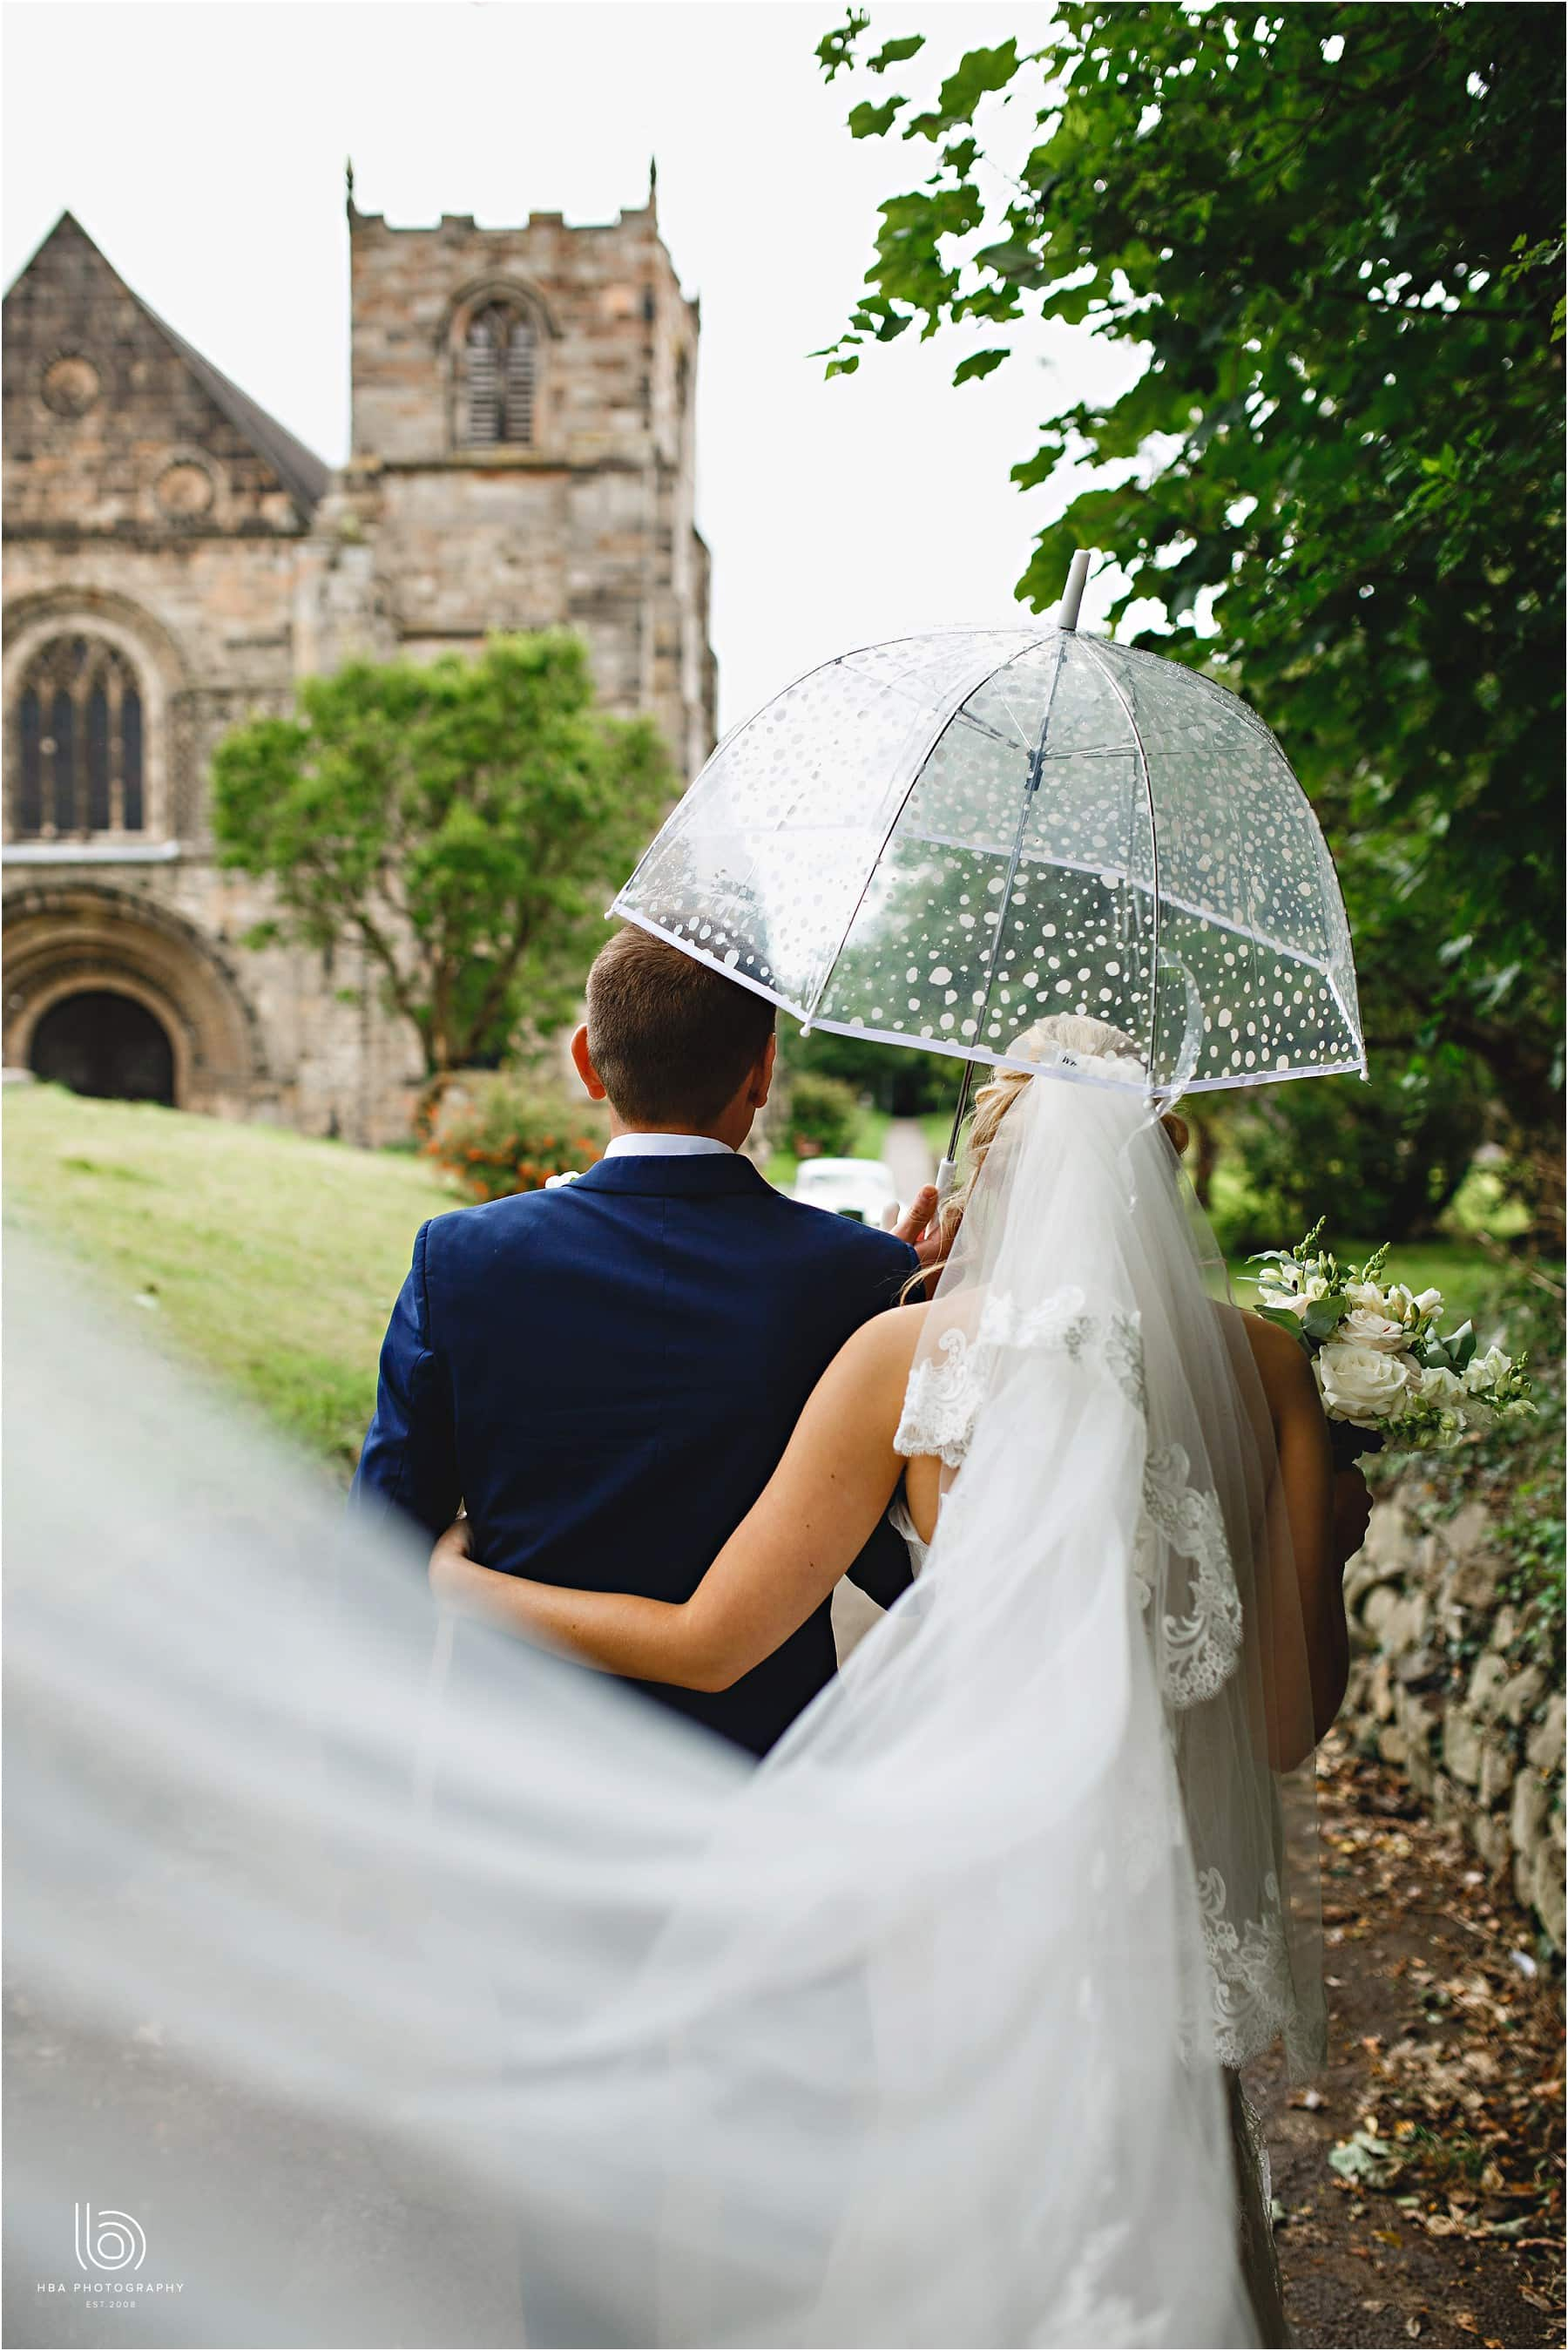 the bride & groom with an umbrella